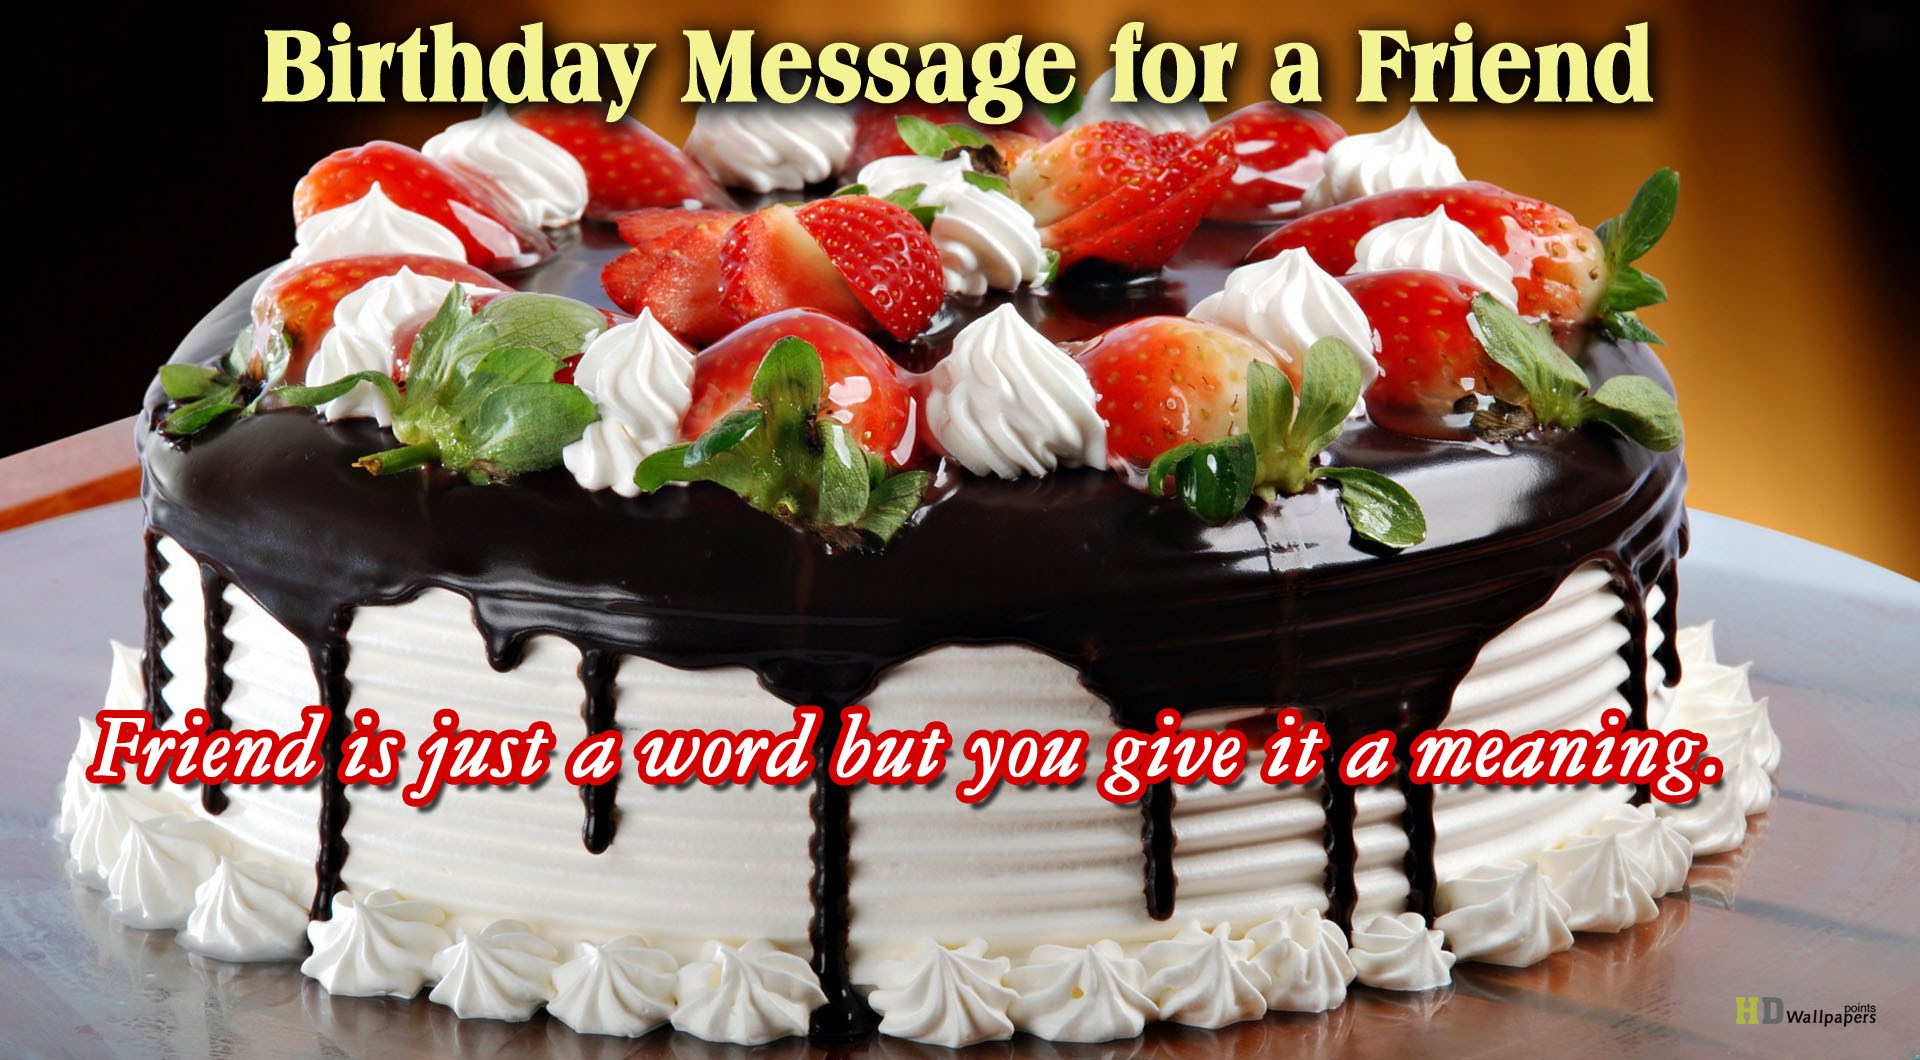 birthday message images facebook ; birthday-cakes-greetings-on-facebook_642729